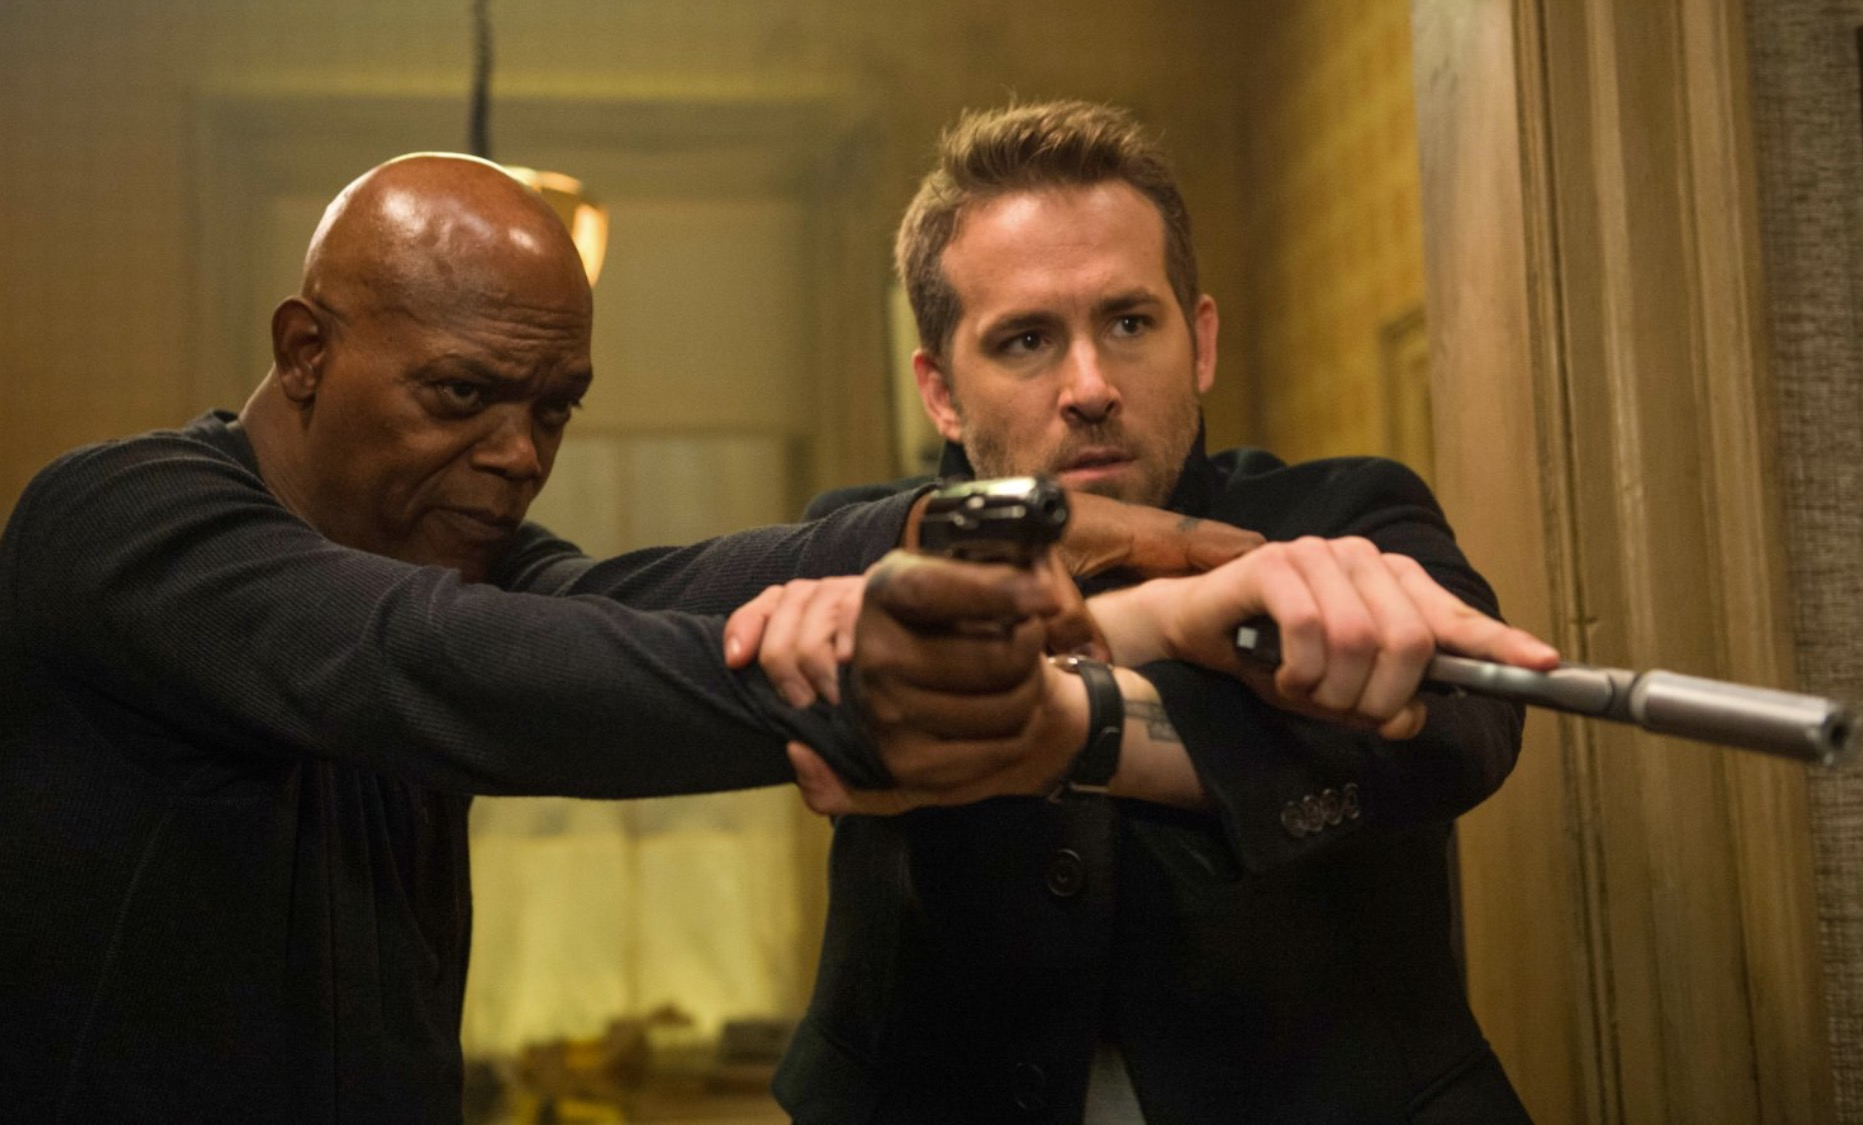 The Hitman's Bodyguard - Ryan Reynolds and Samuel L Jackson